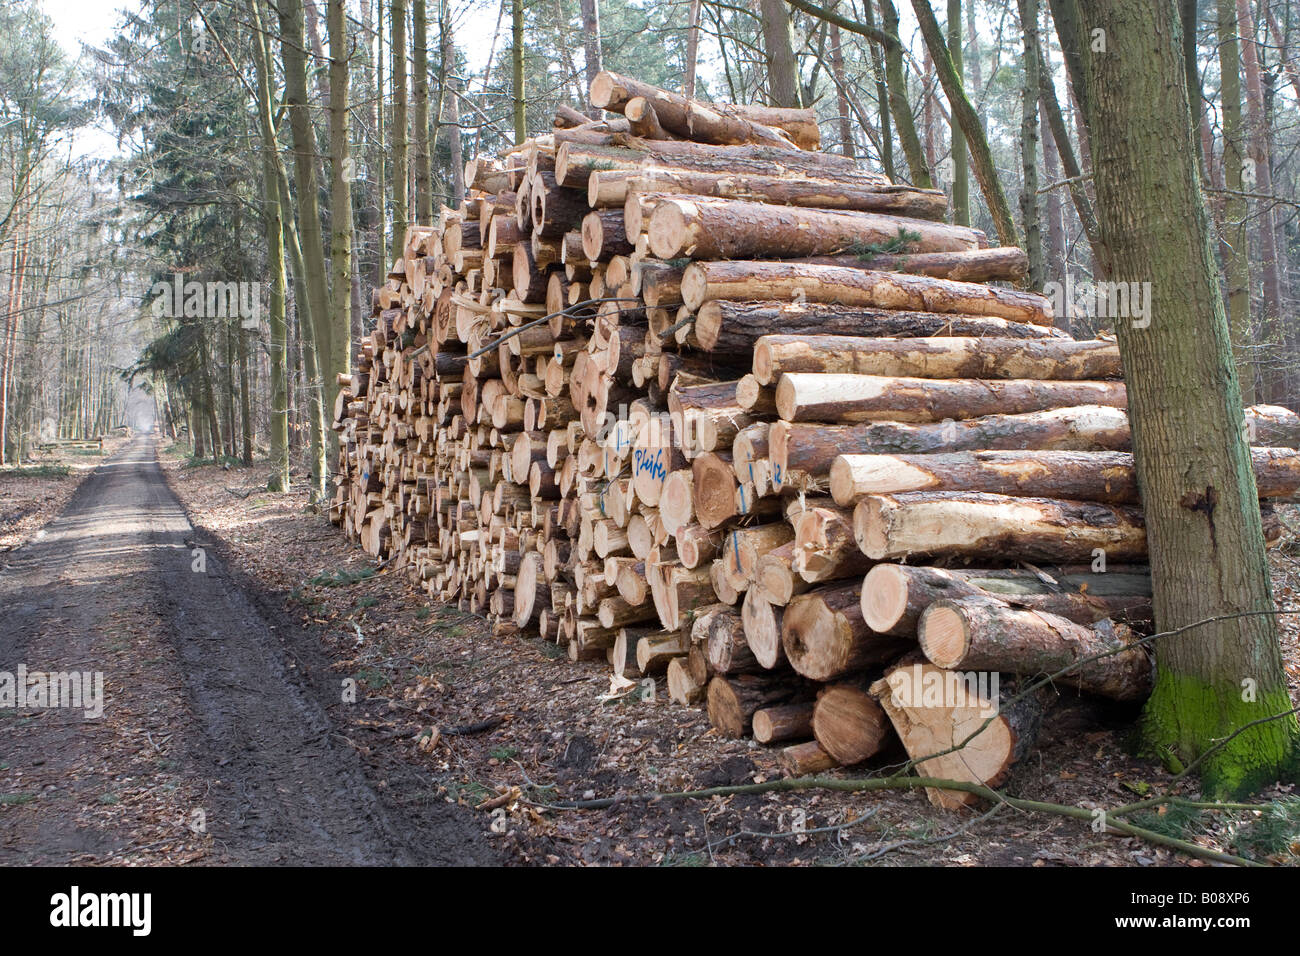 Large pile of logs, tree trunks cut into lengths after storm damage, Hesse, Germany - Stock Image